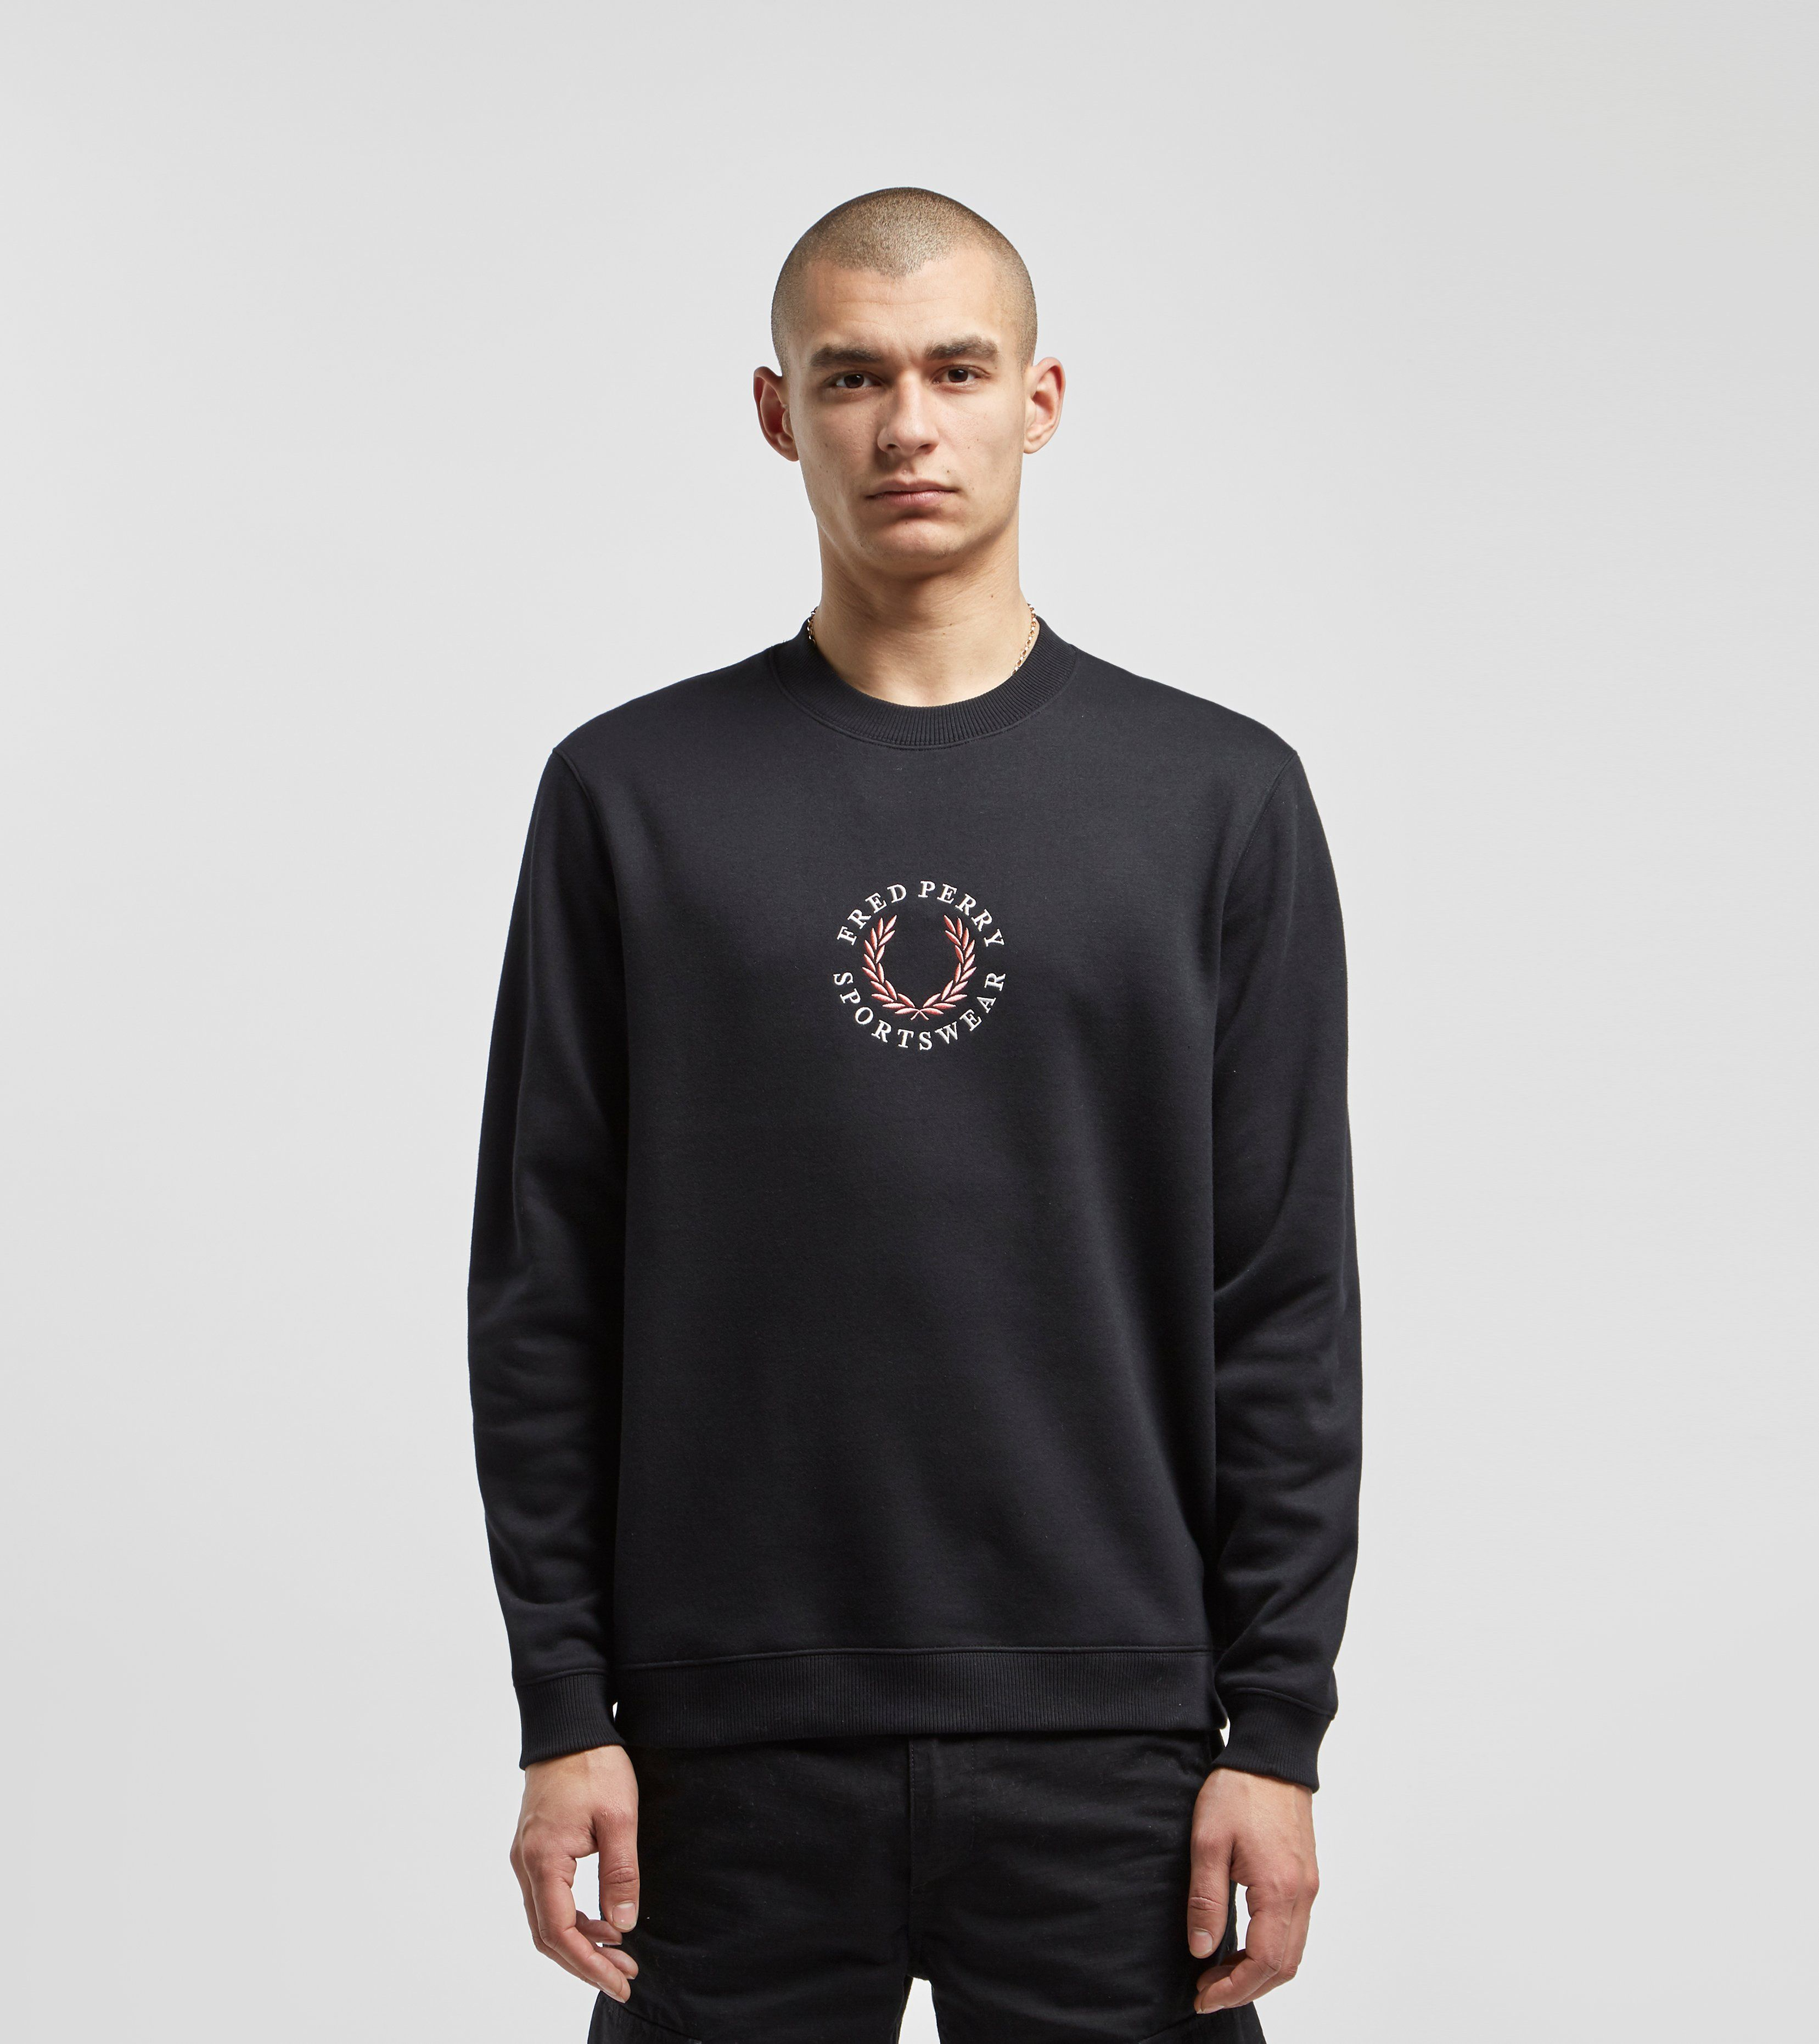 Fred Perry Global Branded Sweatshirt